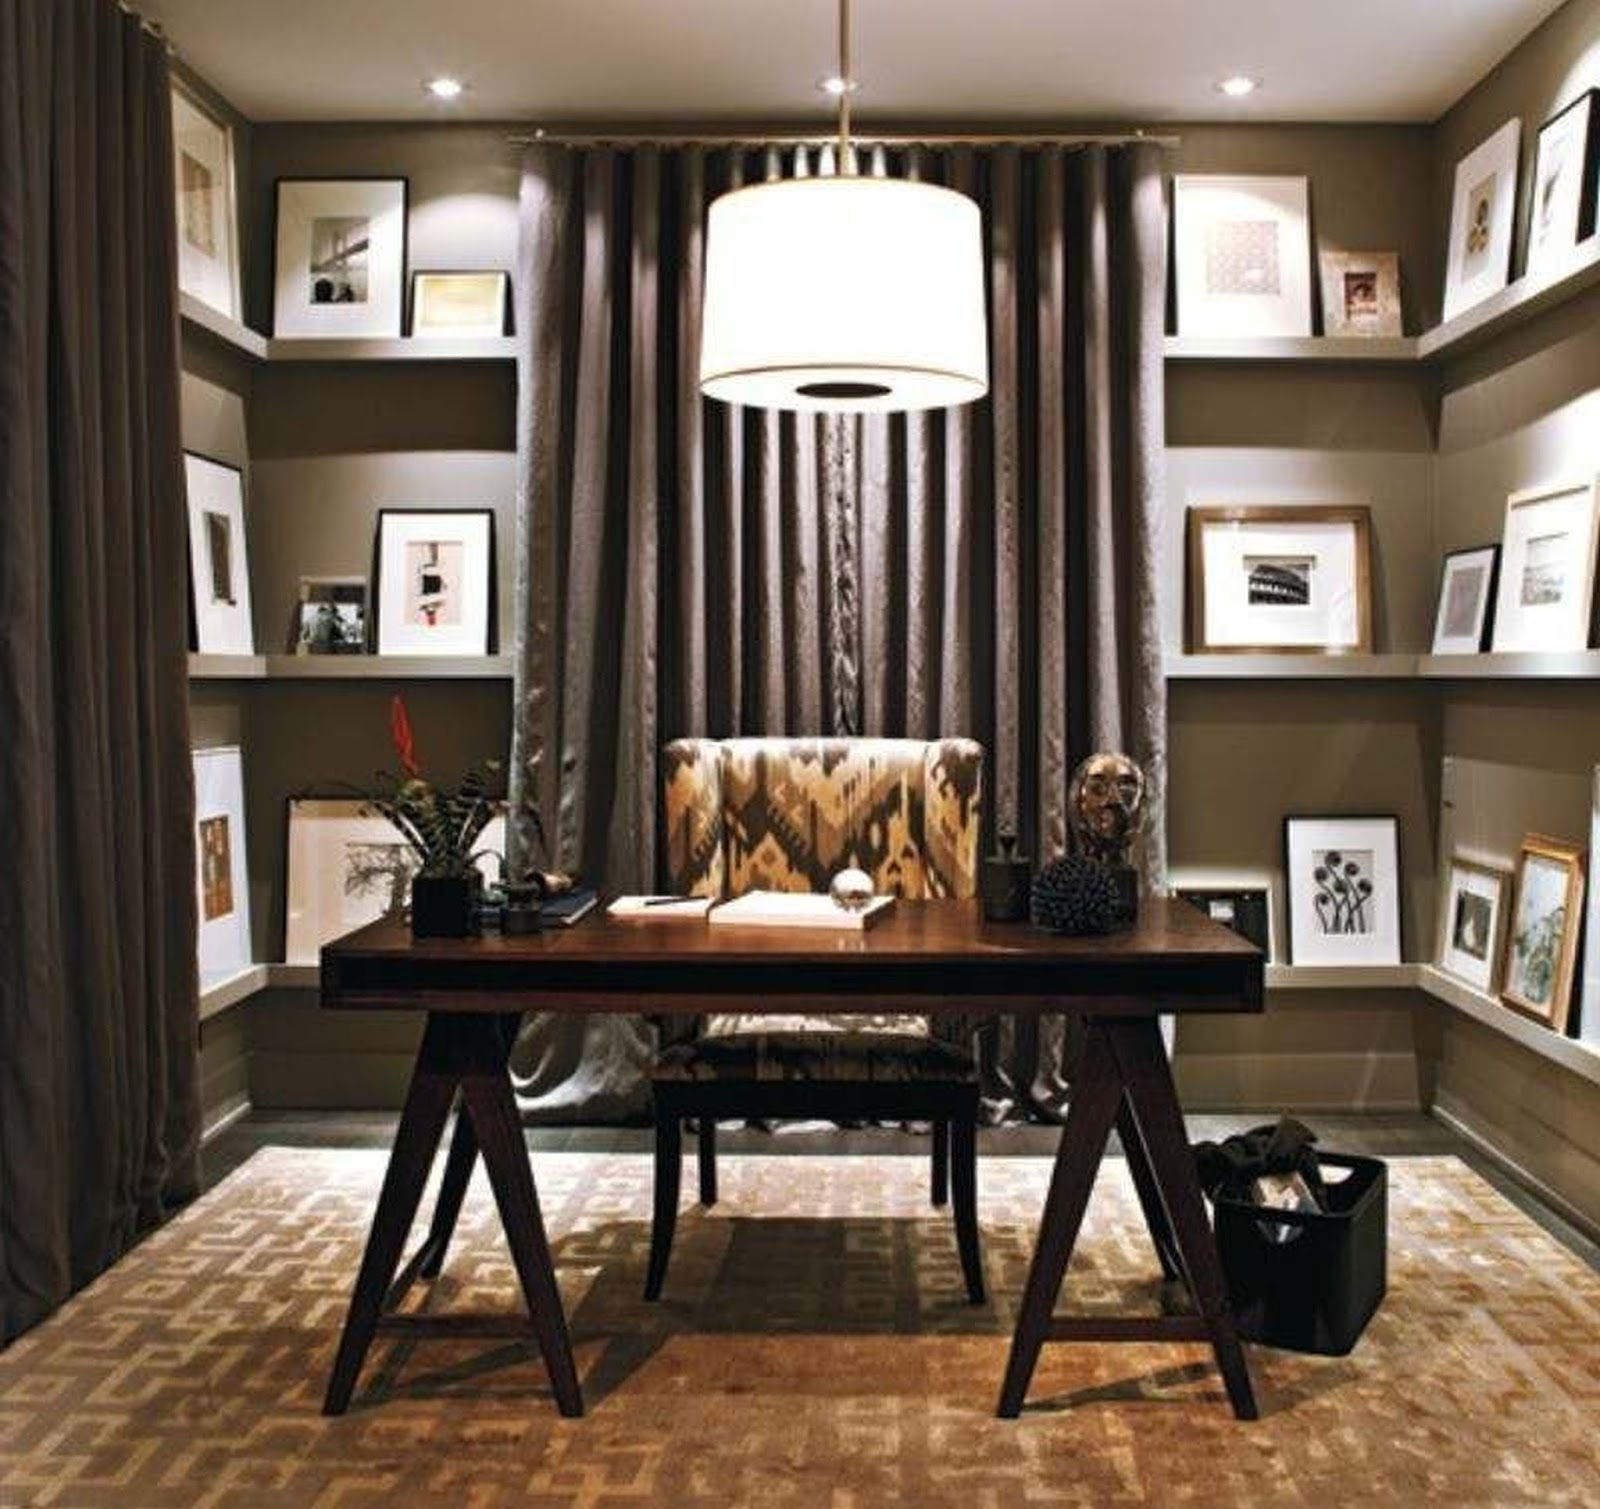 5 Small Office Ideas Photos: 5 Tips How To Decorating An Artistic Home Office